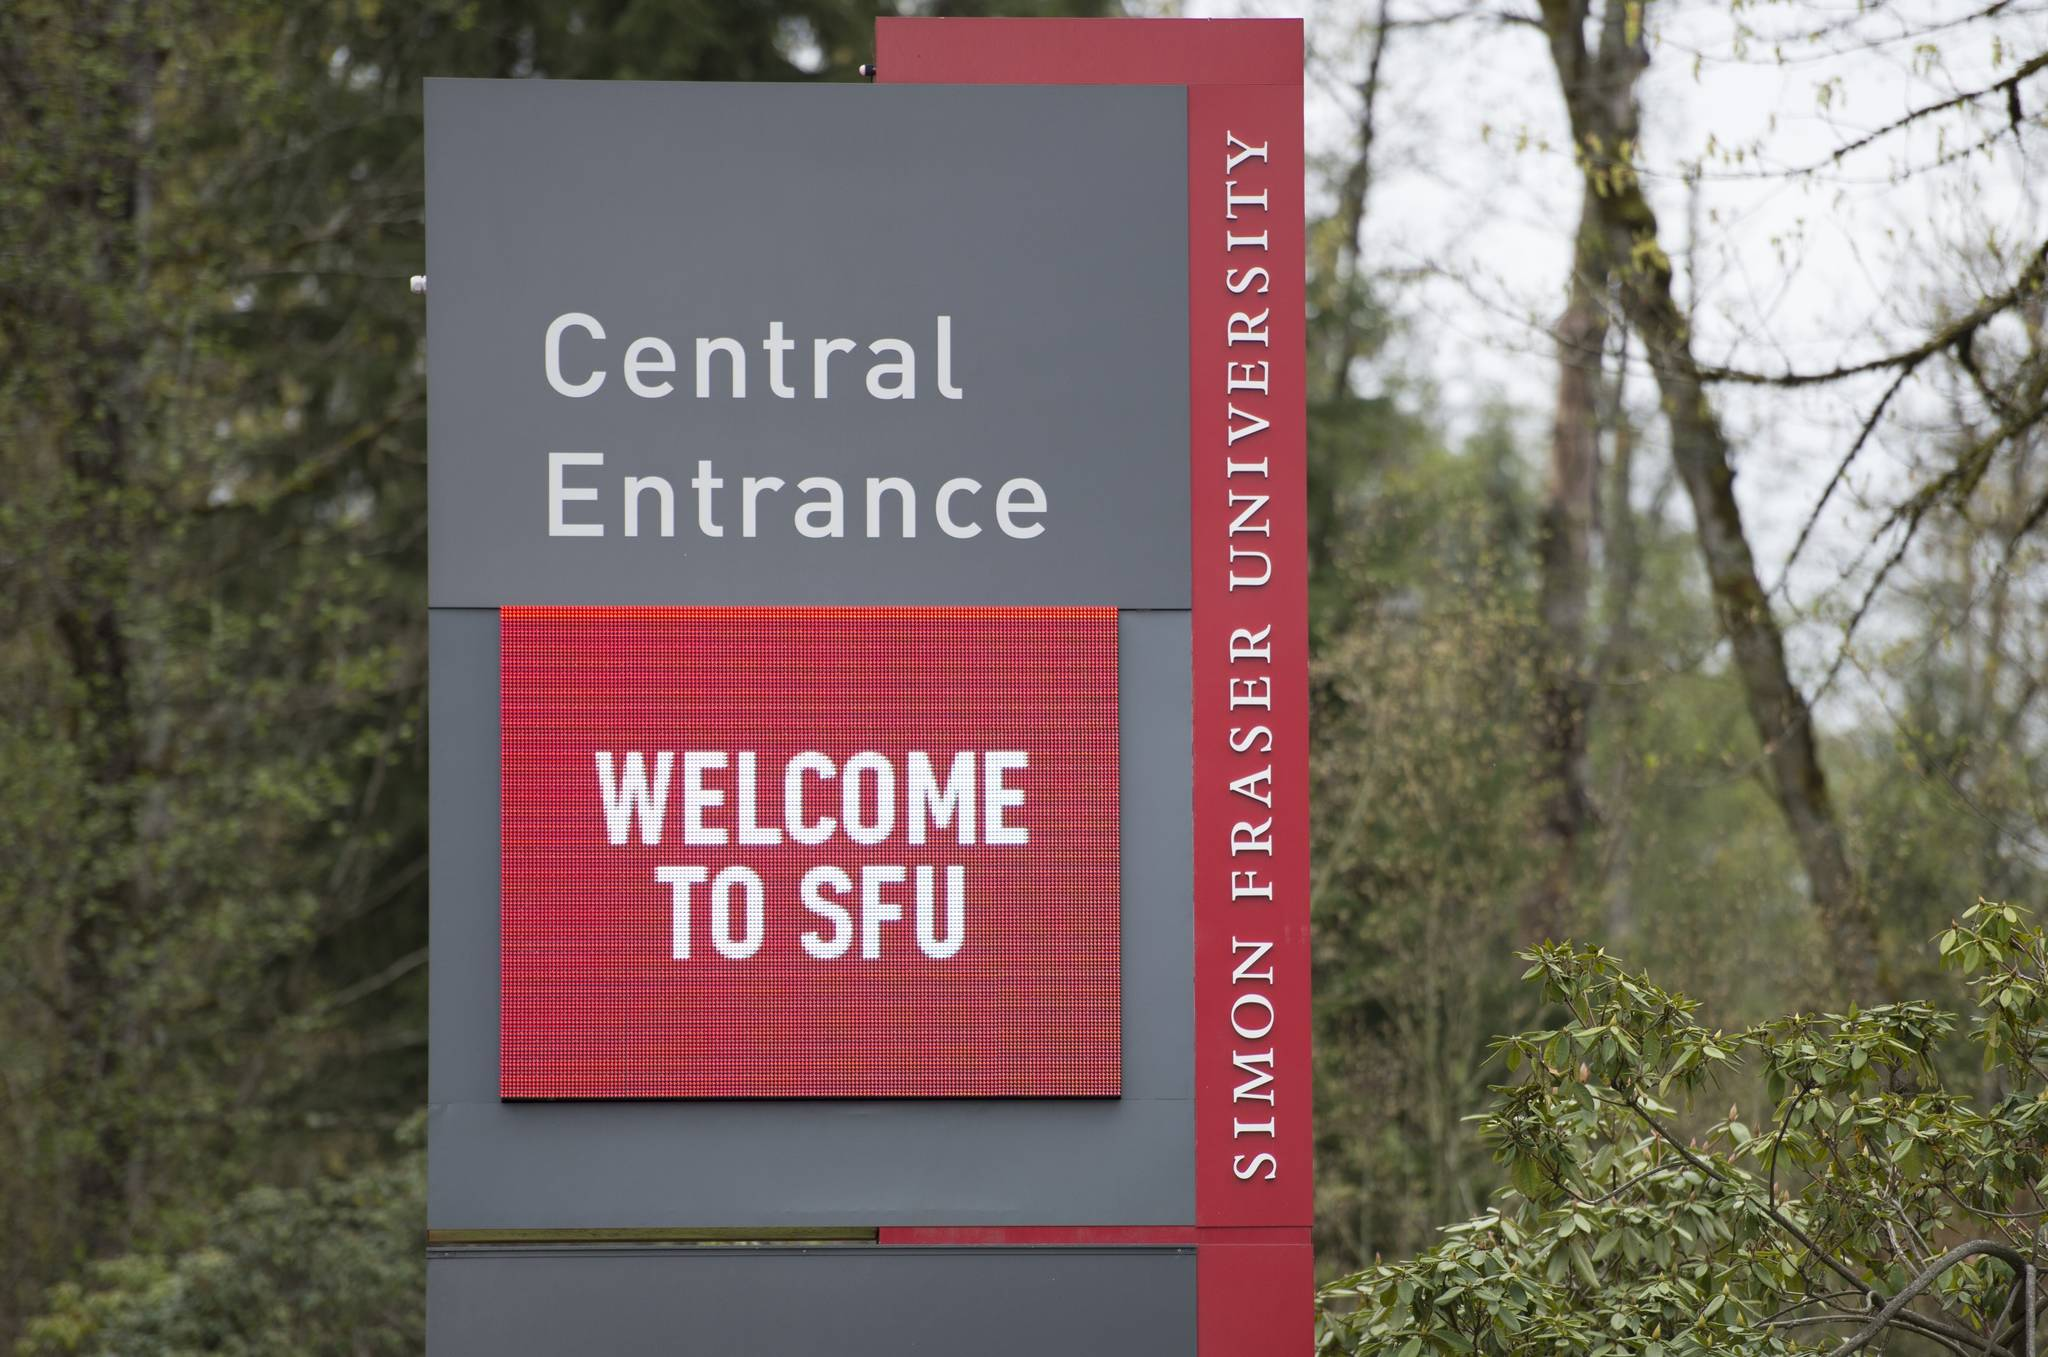 Simon Fraser University is pictured in Burnaby, B.C., Tuesday, Apr. 16, 2019. THE CANADIAN PRESS/Jonathan Hayward